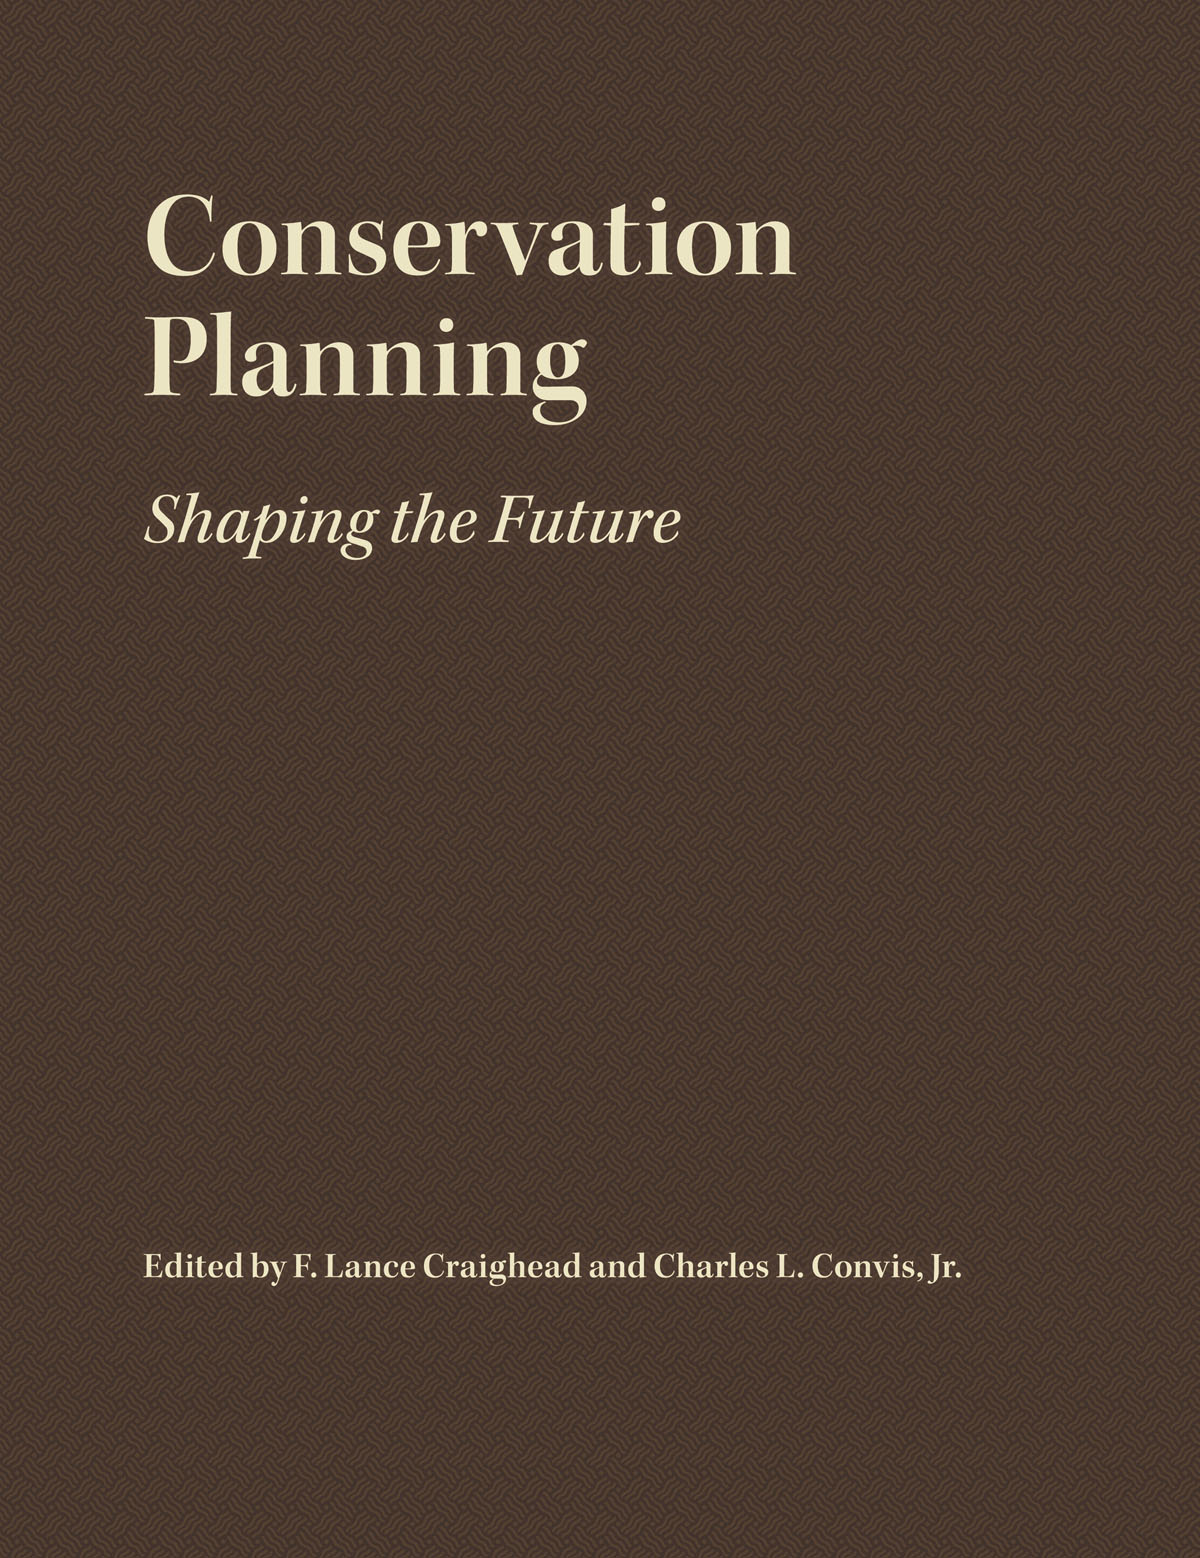 This is essential reading for those interested in smart land planning and balancing the interests of the built and natural environments.